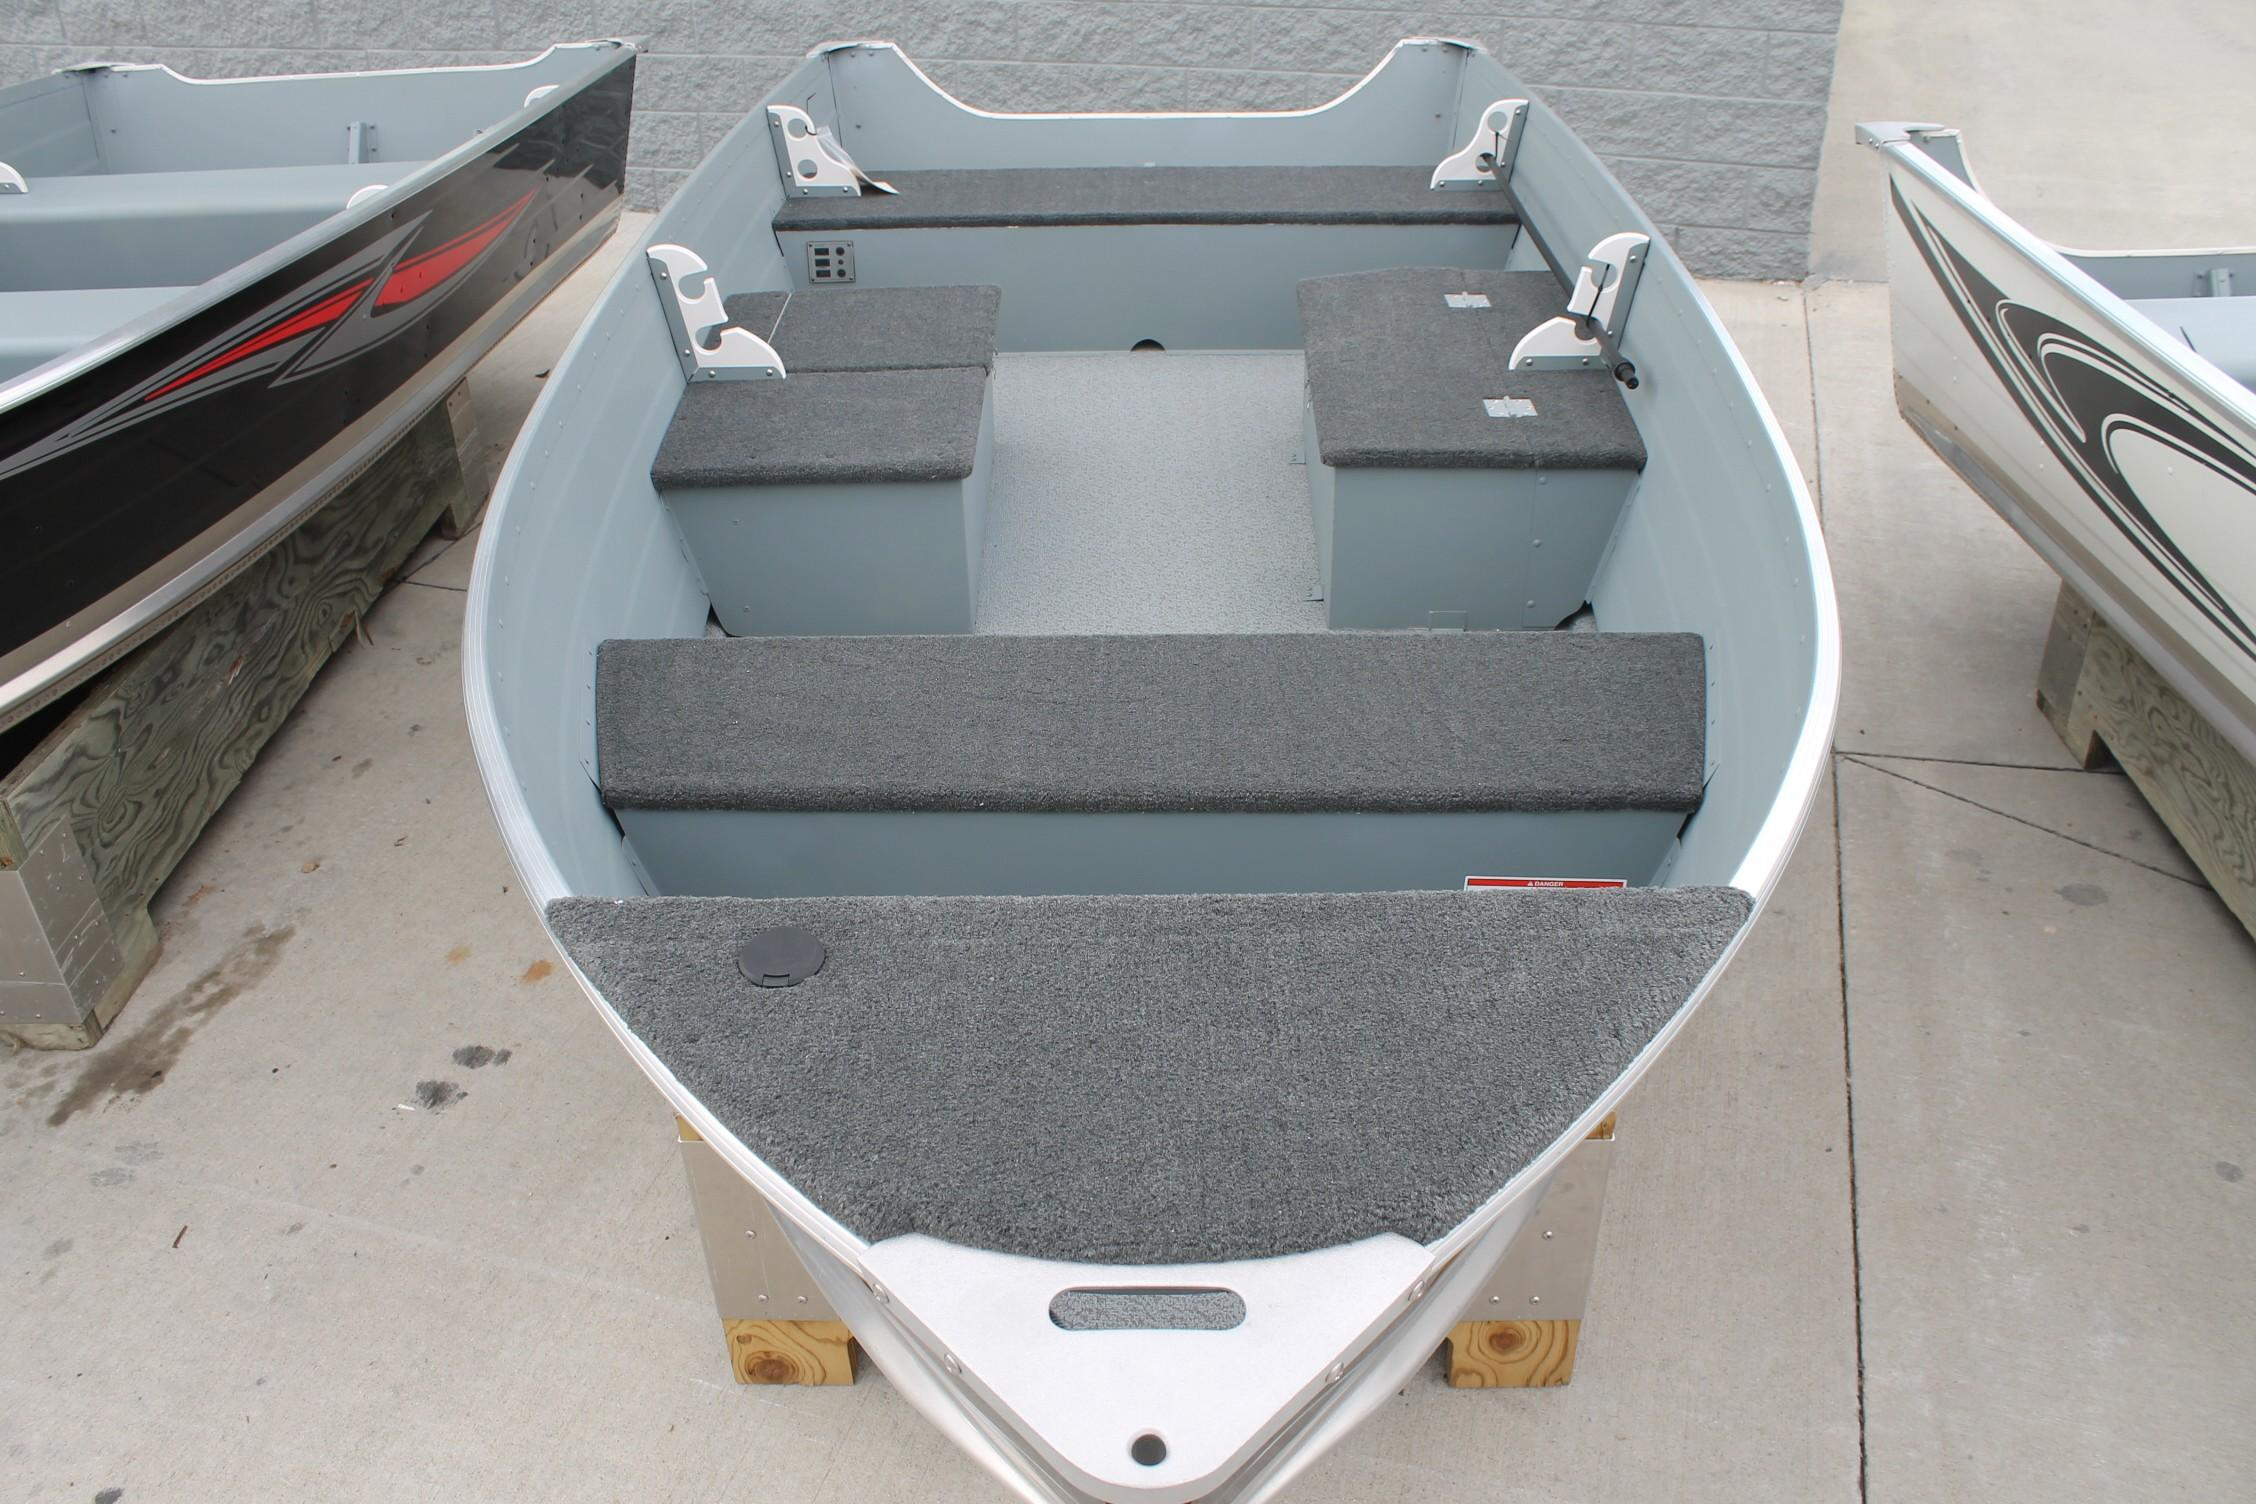 2019 Smoker Craft boat for sale, model of the boat is 14 Big Fish & Image # 5 of 9